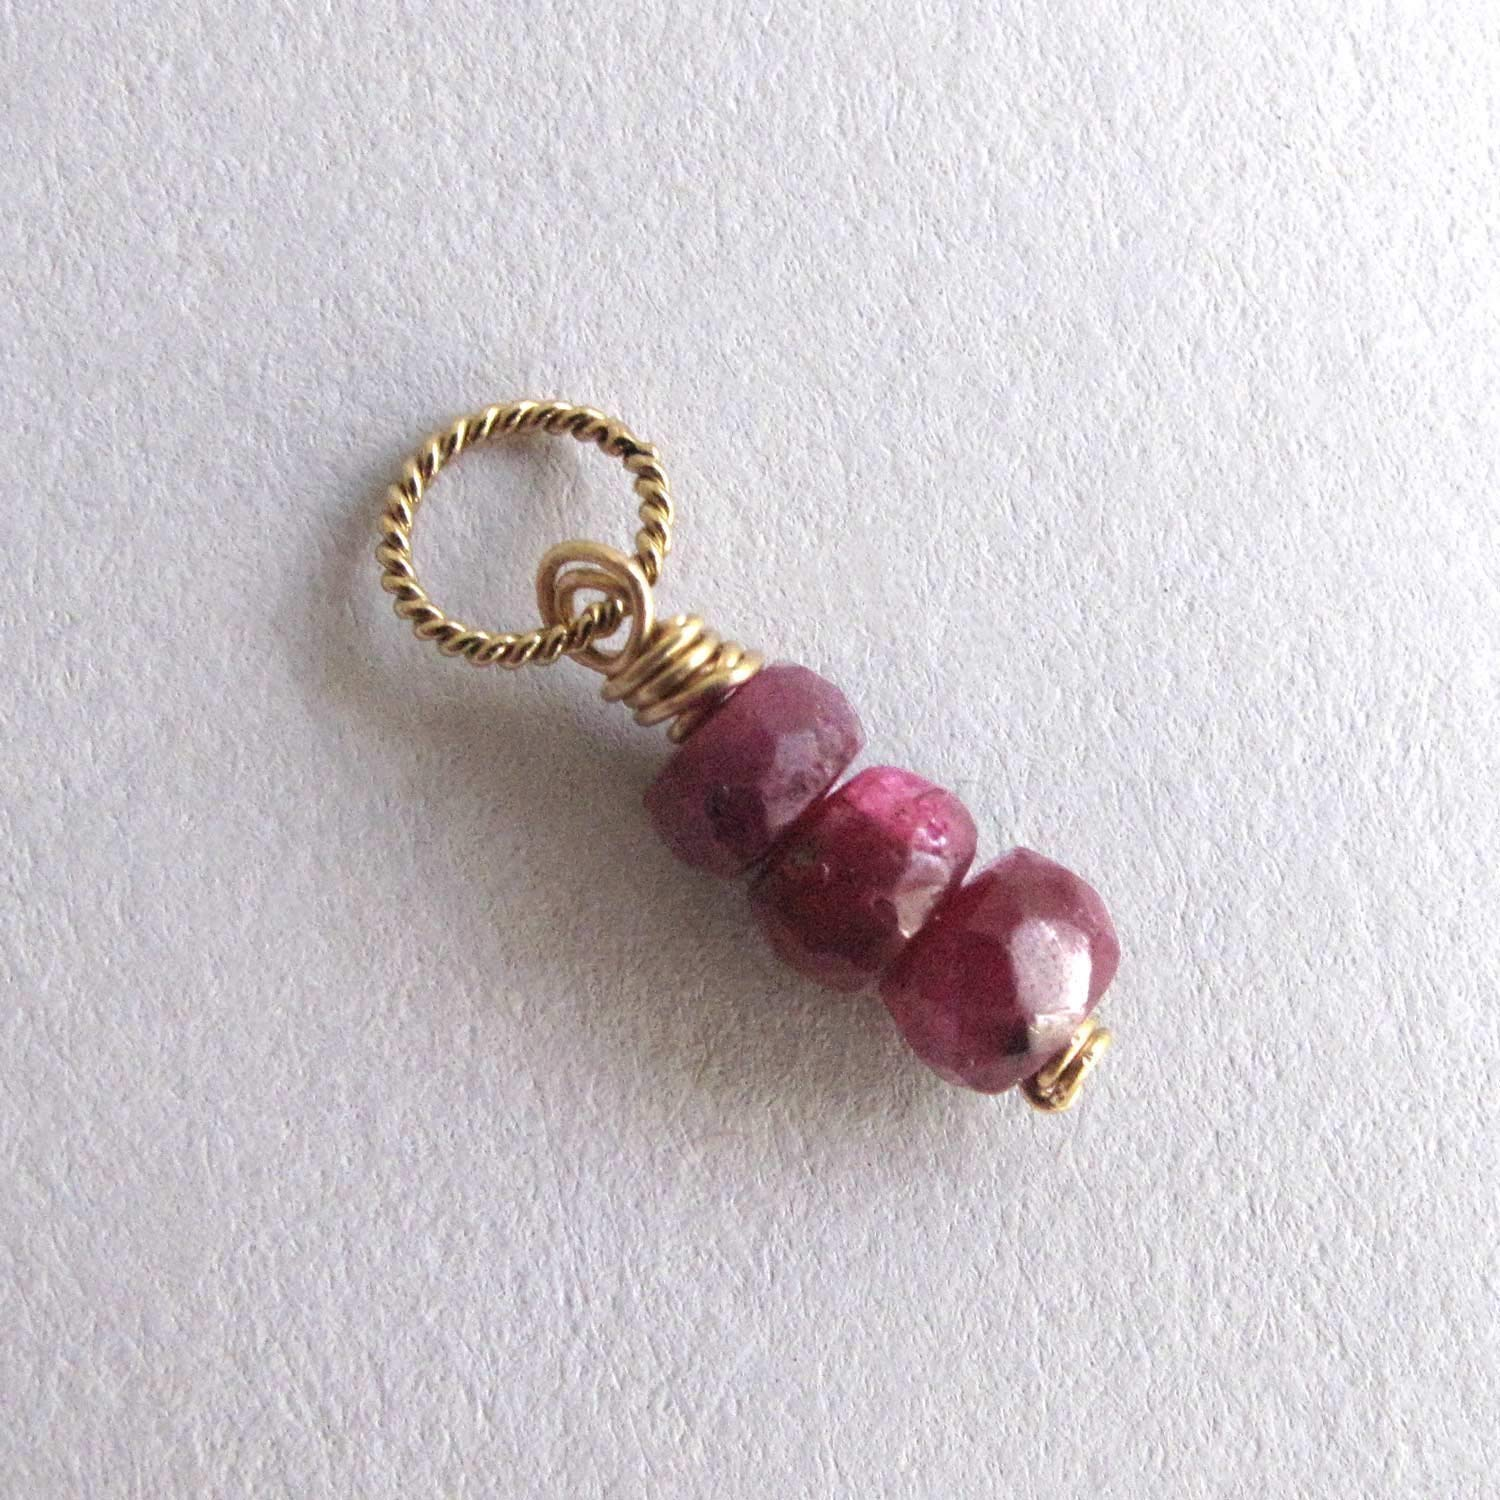 18-Inch Hamilton Gold Plated Necklace with 6mm Ruby Birthstone Beads and 5-Way Charm Red Ruby July Birthstone